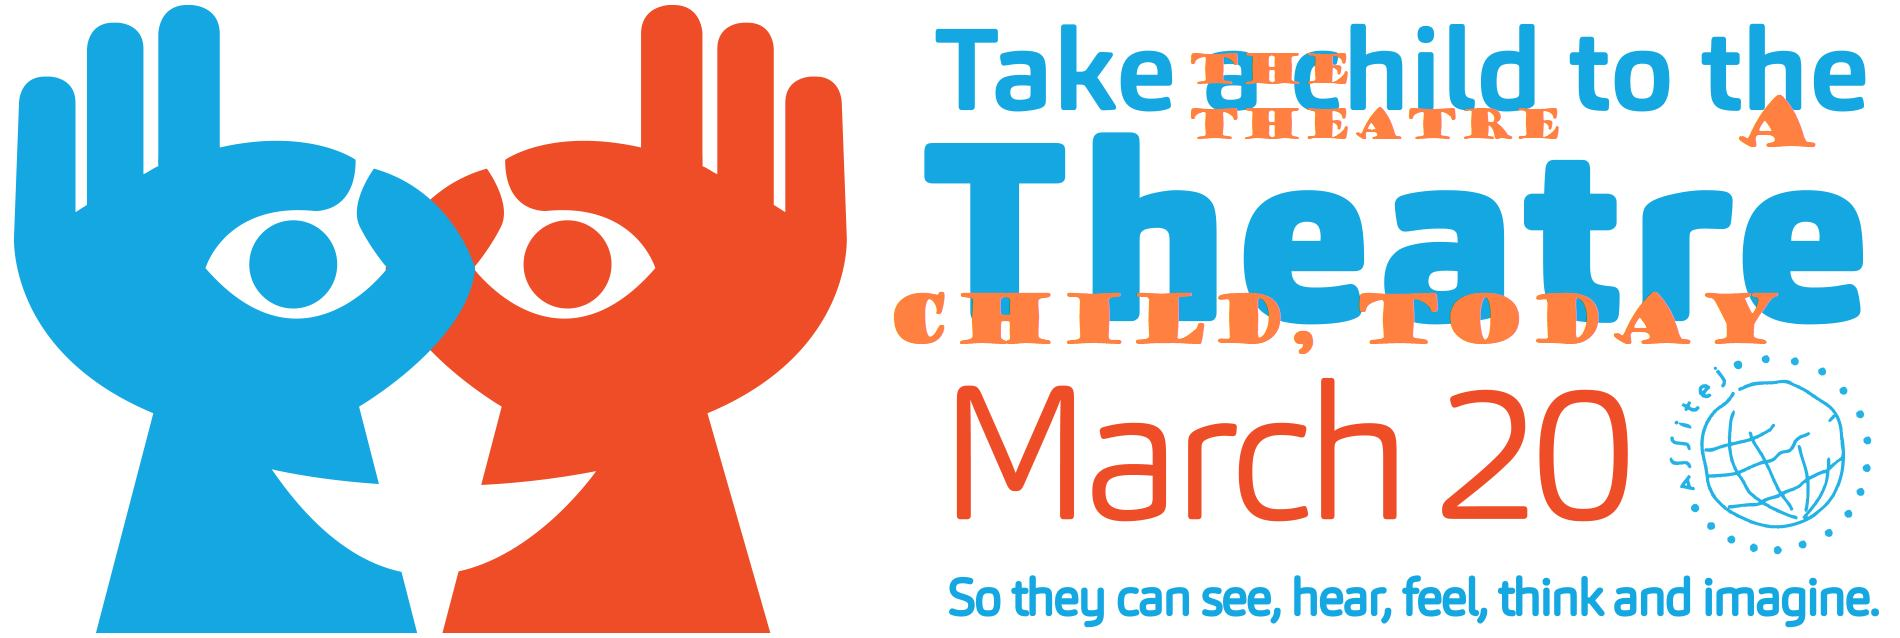 Take the Theatre to a Child, today! Upside Down World Day of Theater for Young Audiences on March 20th